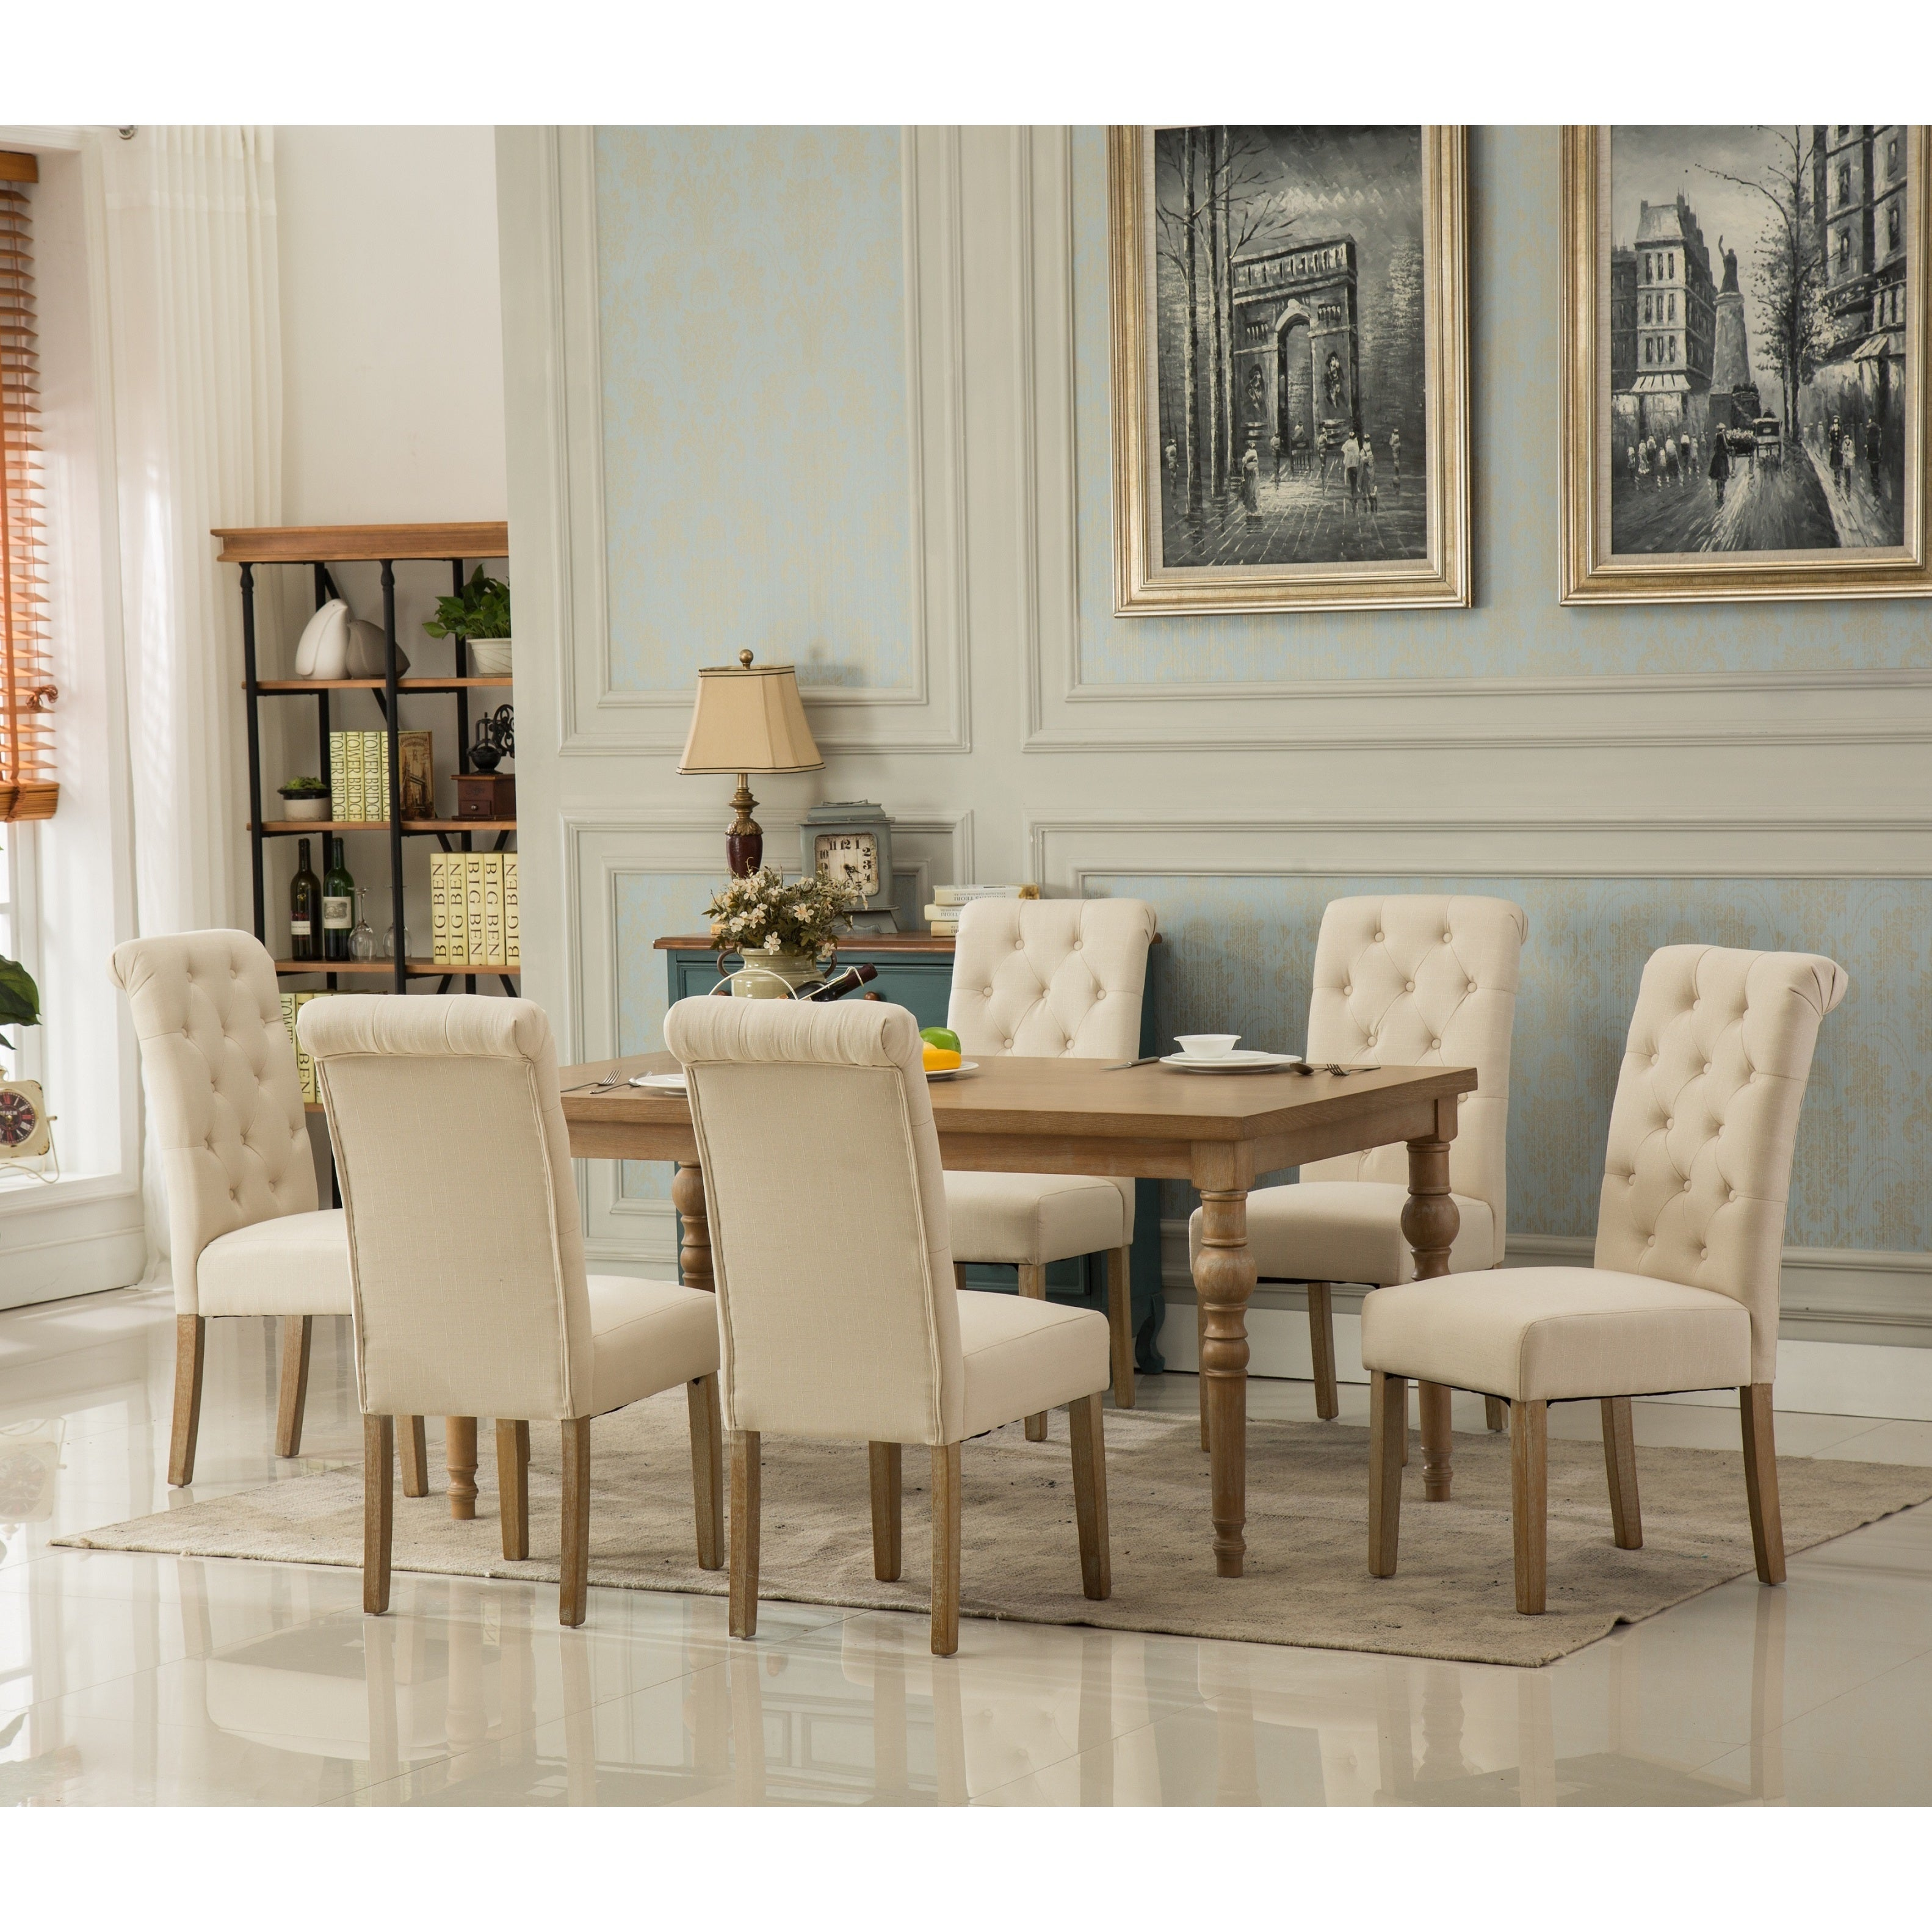 Habitanian Solid Wood Dining Table With 6 Button Tufted Chairs